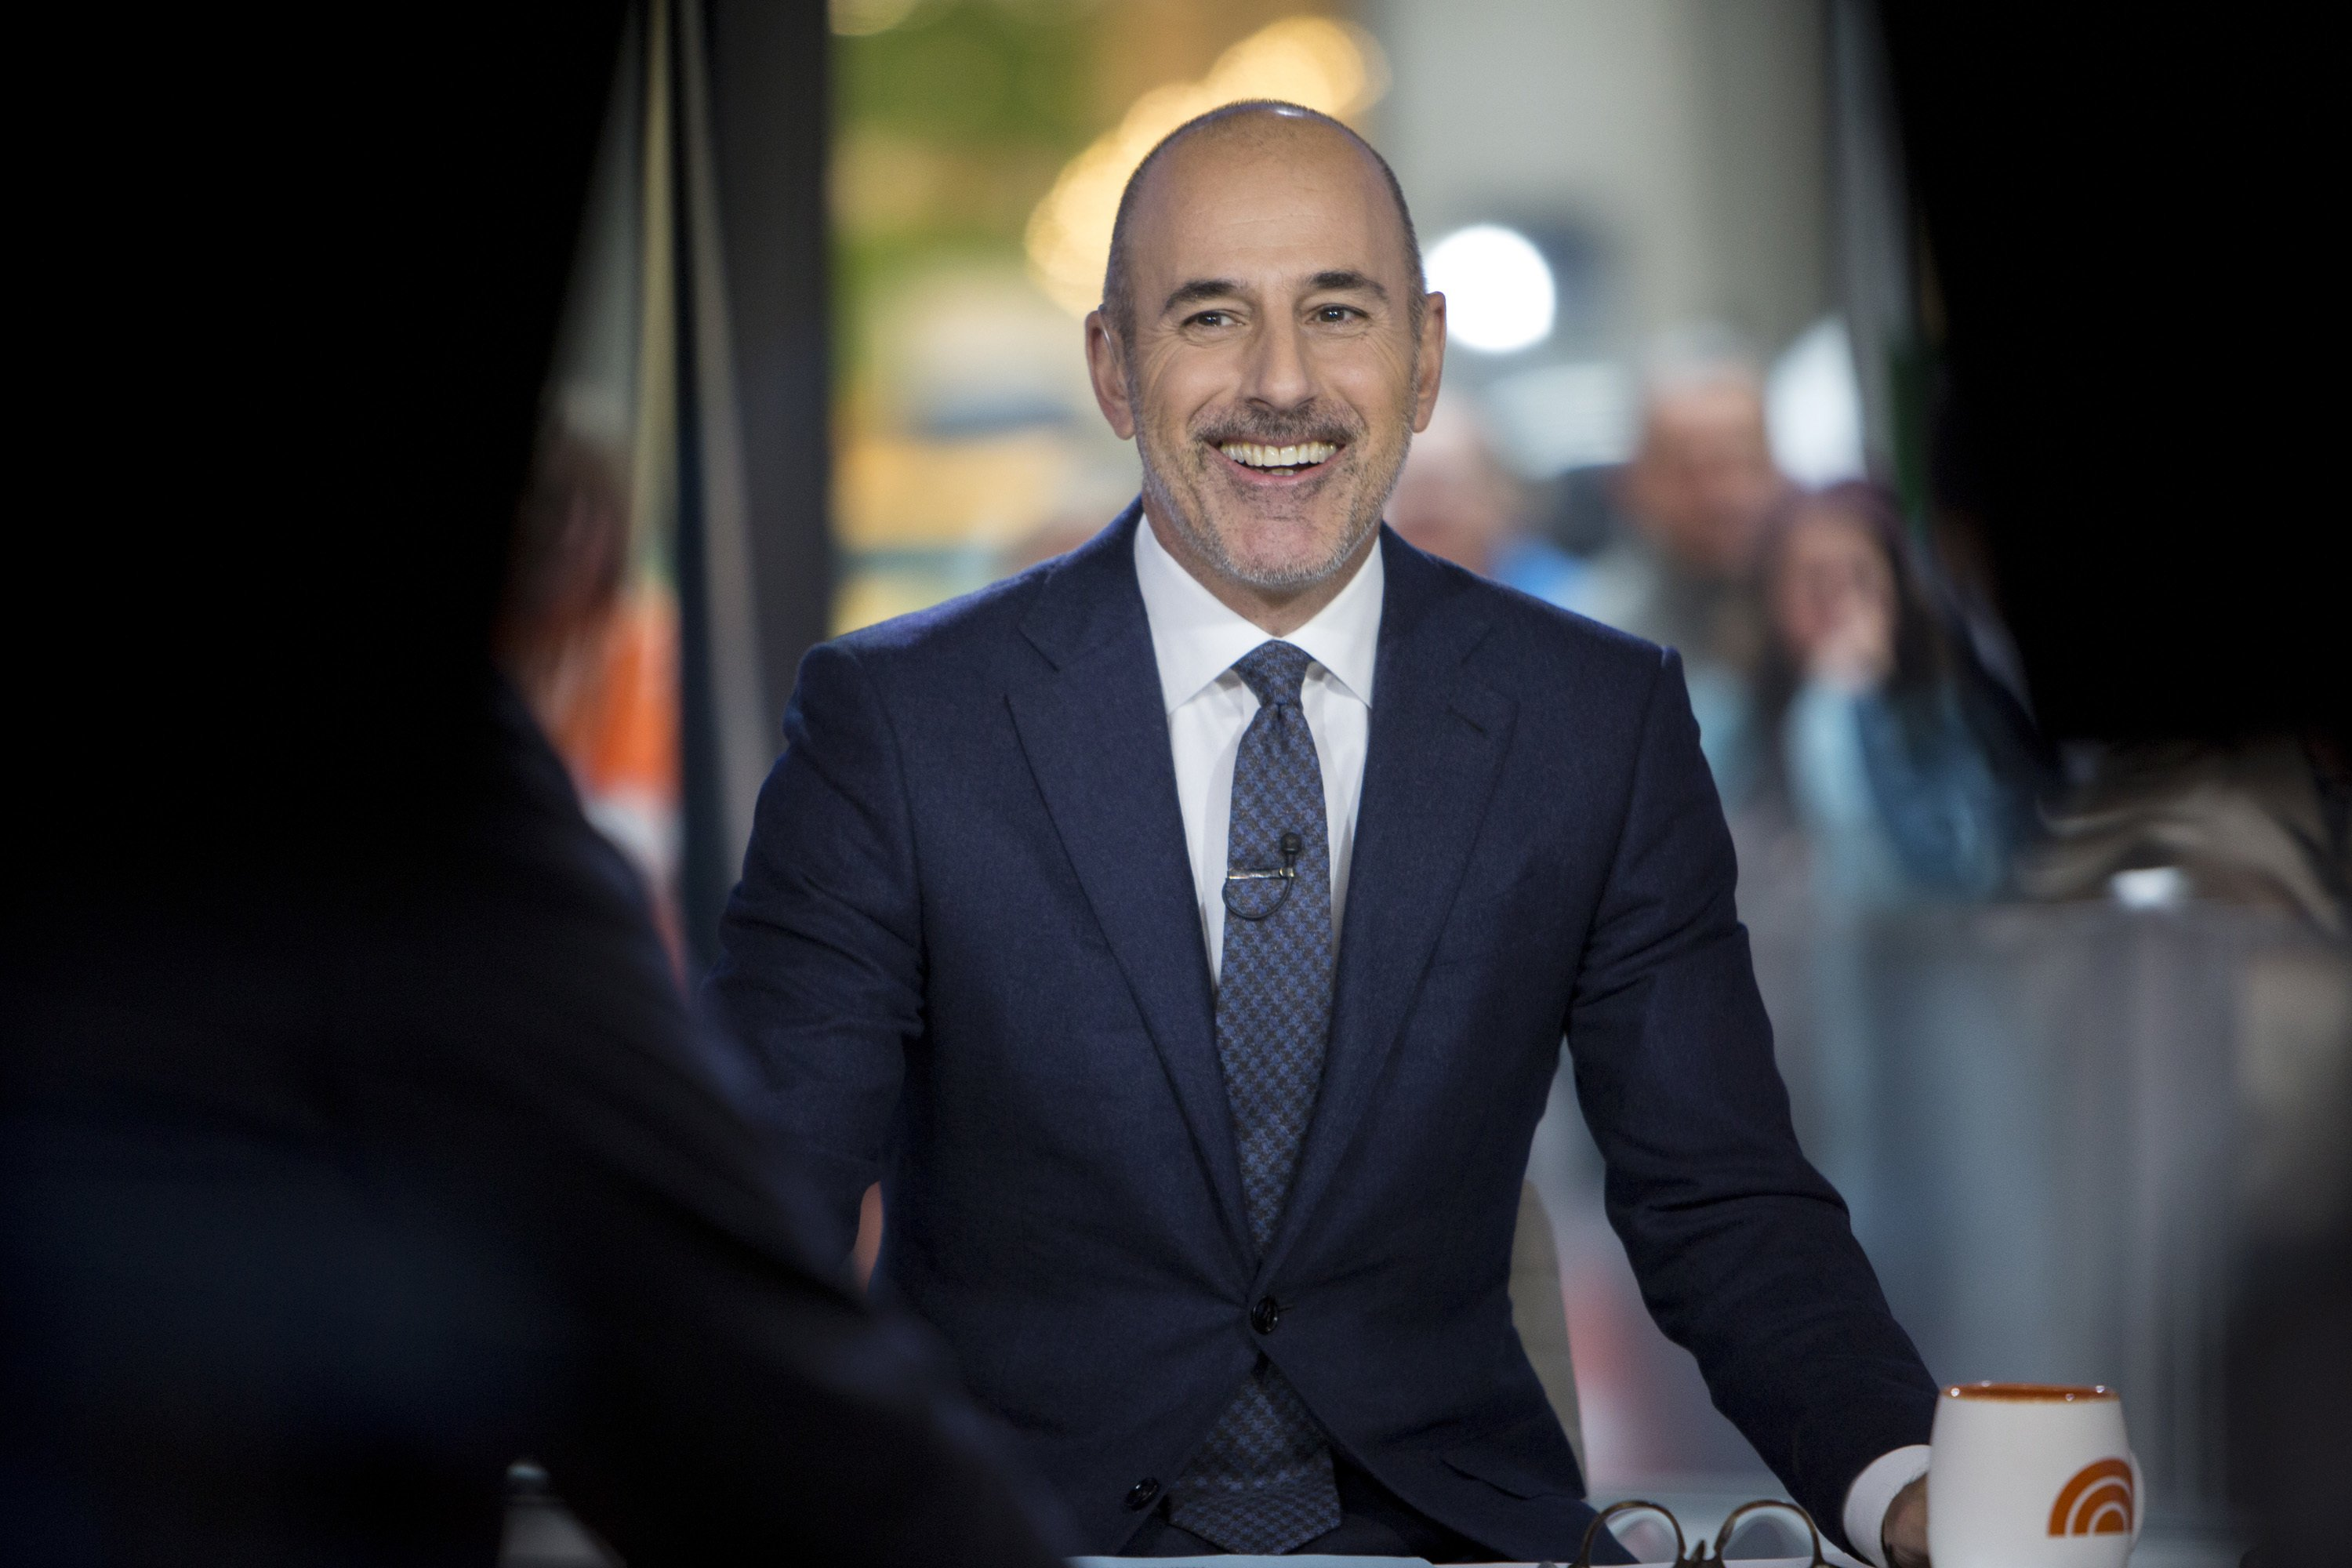 Lauer apologizes, NBC looks to move on but questions linger